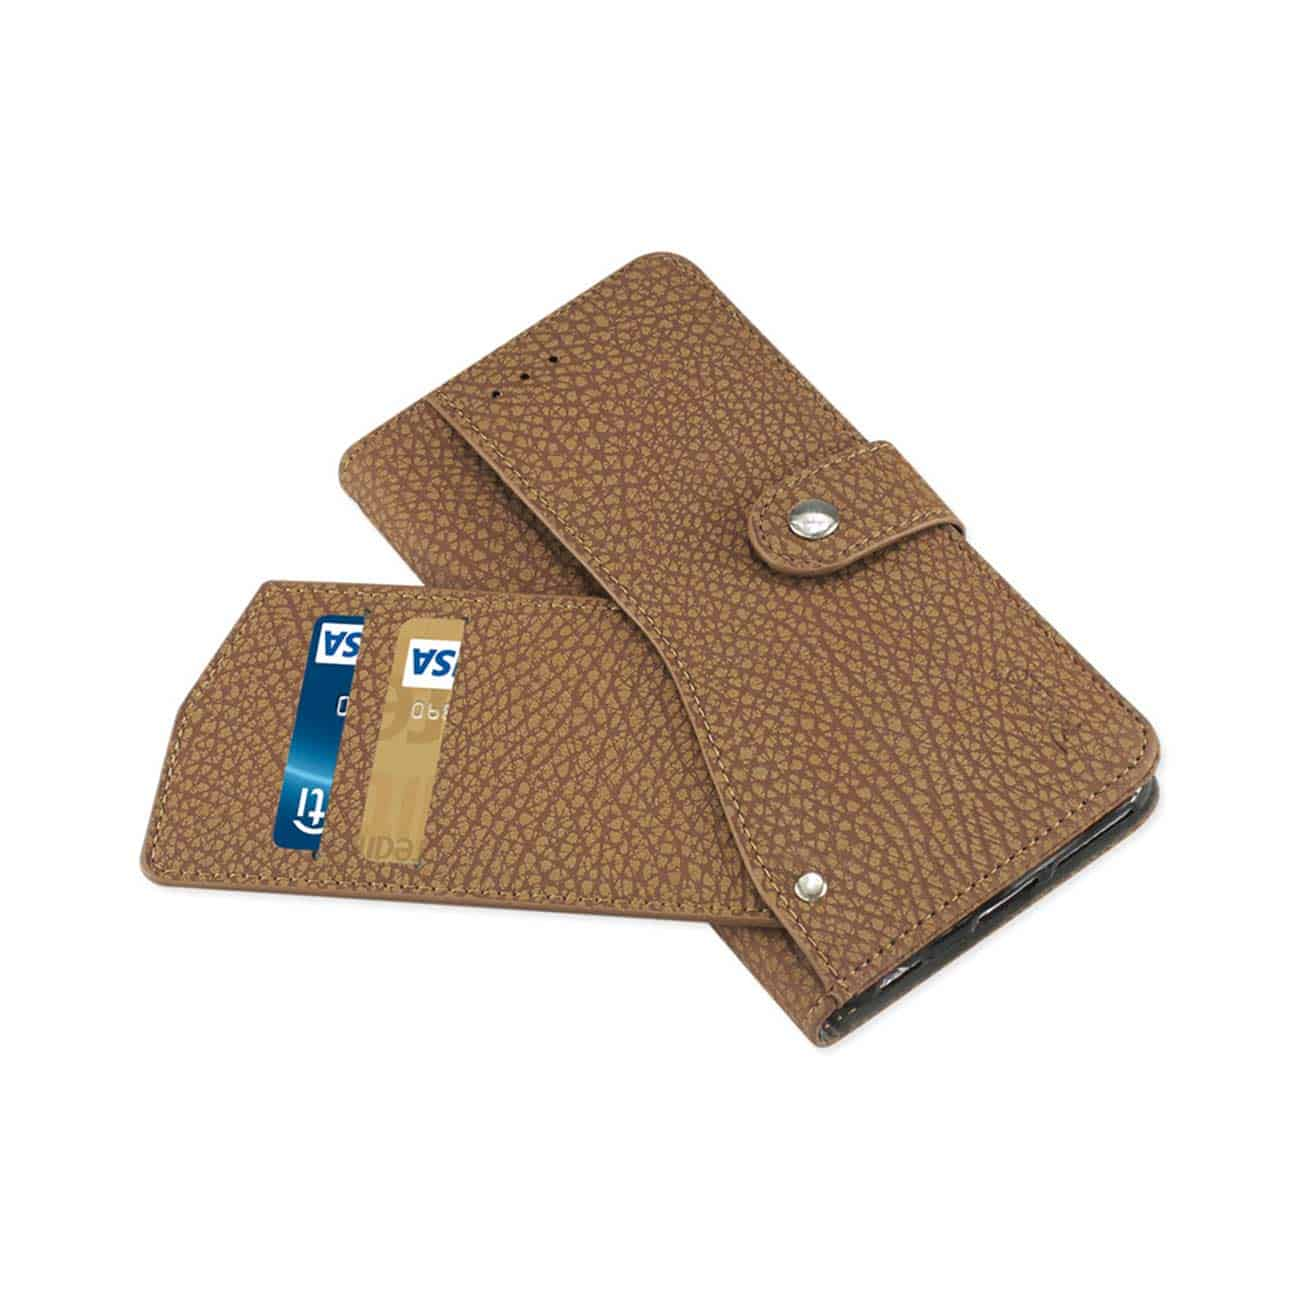 IPHONE 6 PLUS/ 6S PLUS WALLET CASE WITH SLIDE OUT POCKET AND FOLD STAND IN BROWN